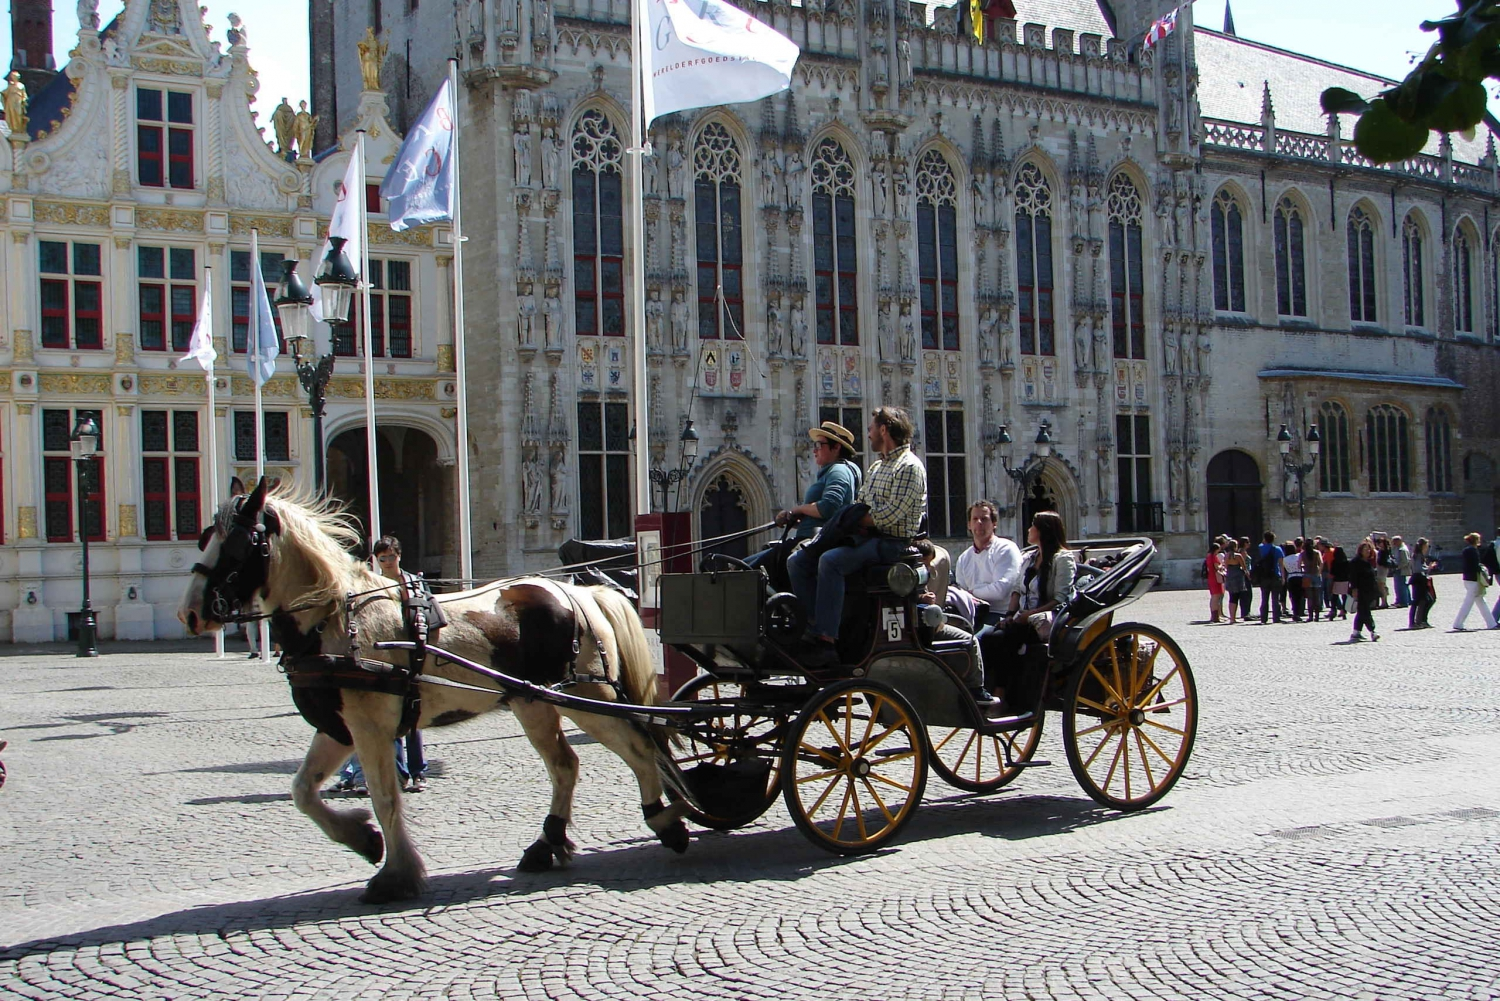 Full Day Excursion to Bruges + Ghent as from Brussels